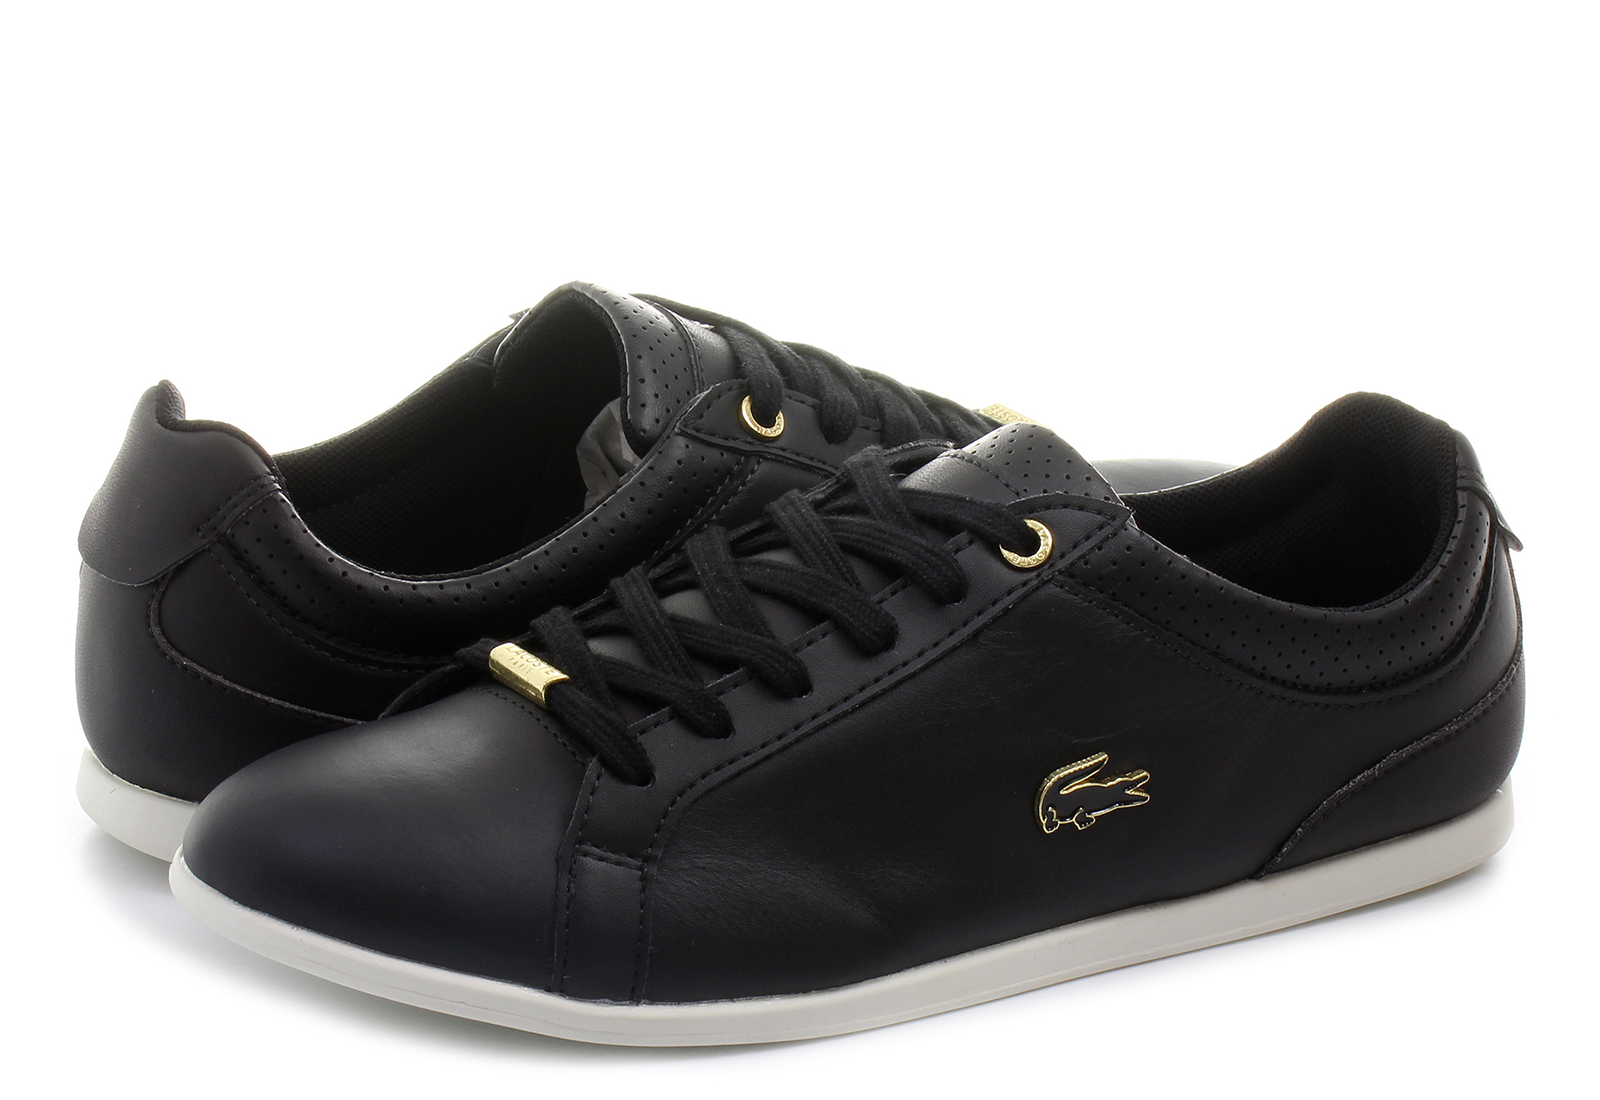 Lacoste Shoes - Rey Lace - 173CAW0081-1V7 - Online shop for ... f5a2445658